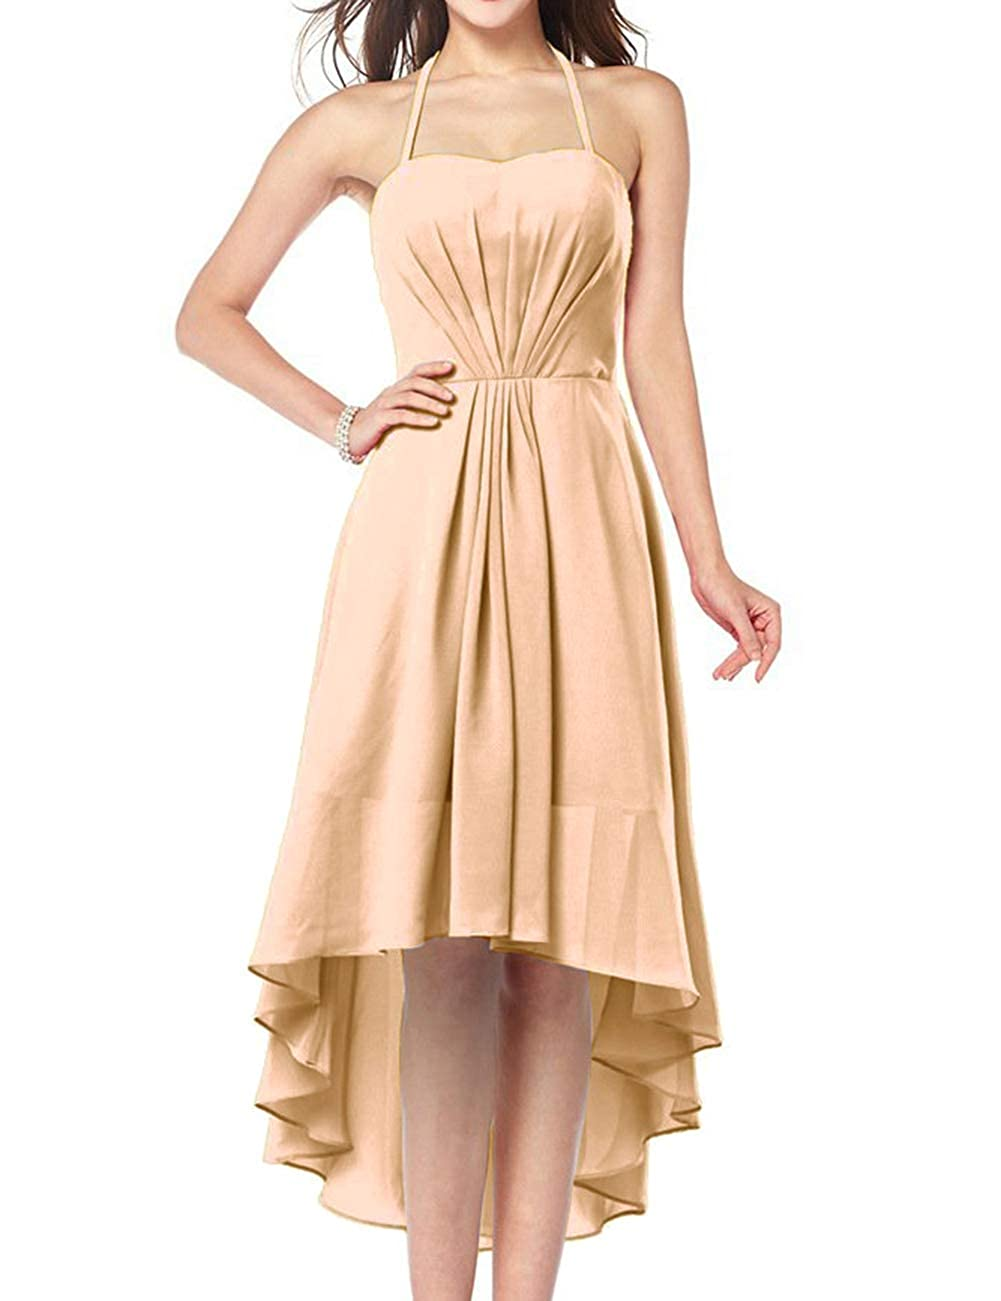 Champagne Uther Plus Size Bridesmaid Dresses Long Aline Halter Hi Lo Evening Prom Party Gown